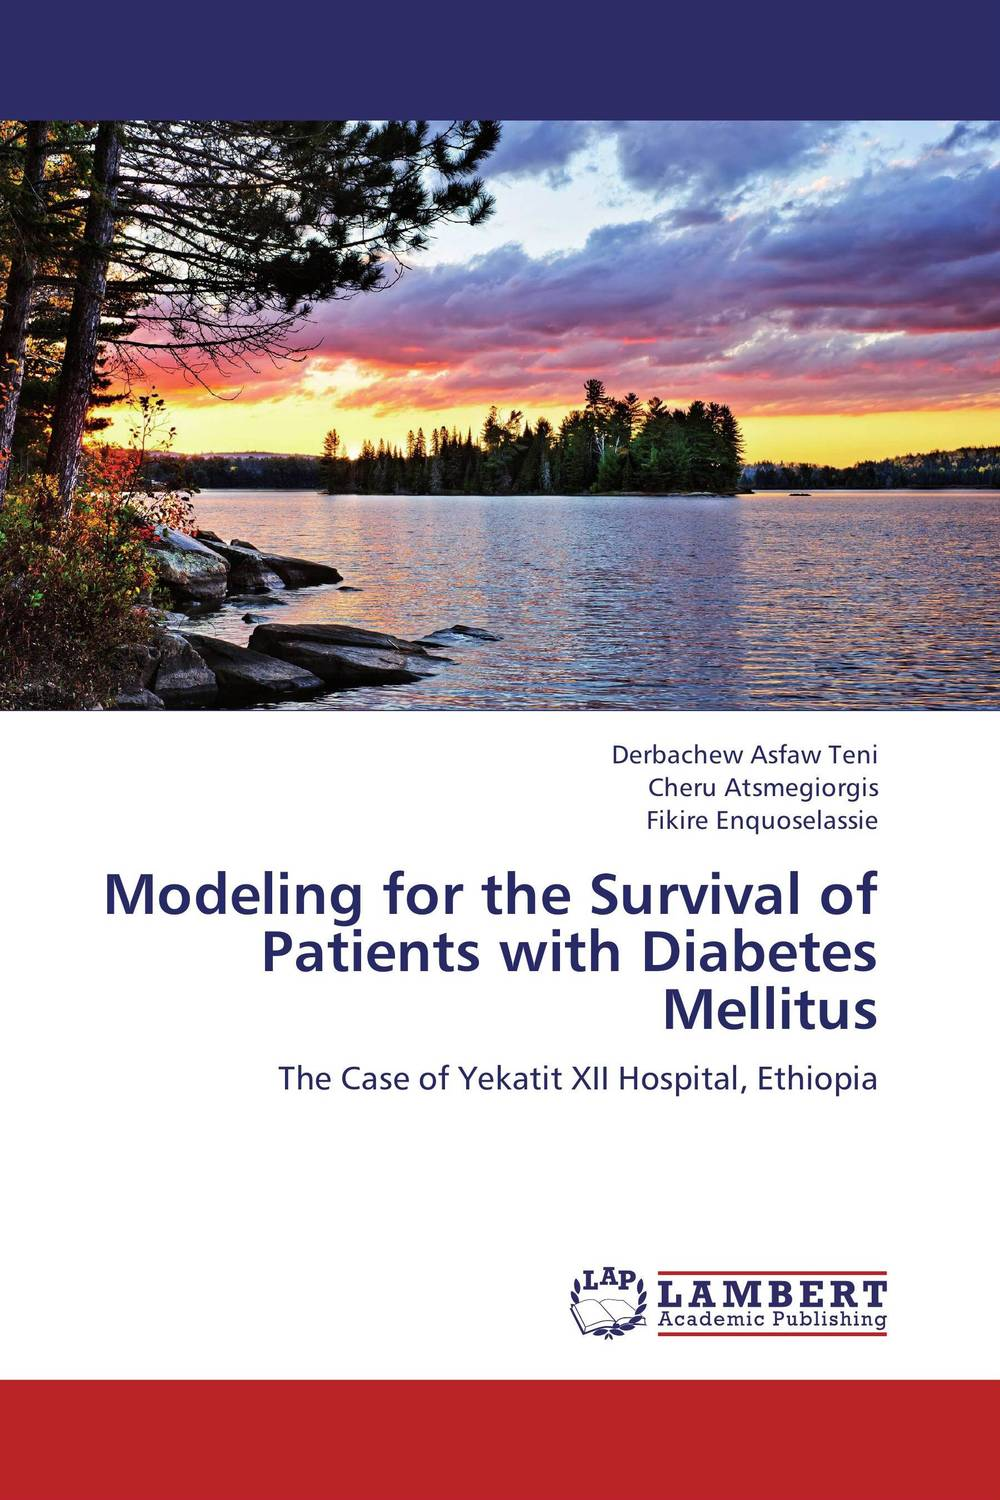 Modeling for the Survival of Patients with Diabetes Mellitus microsimulation modeling of ict policies at firm level